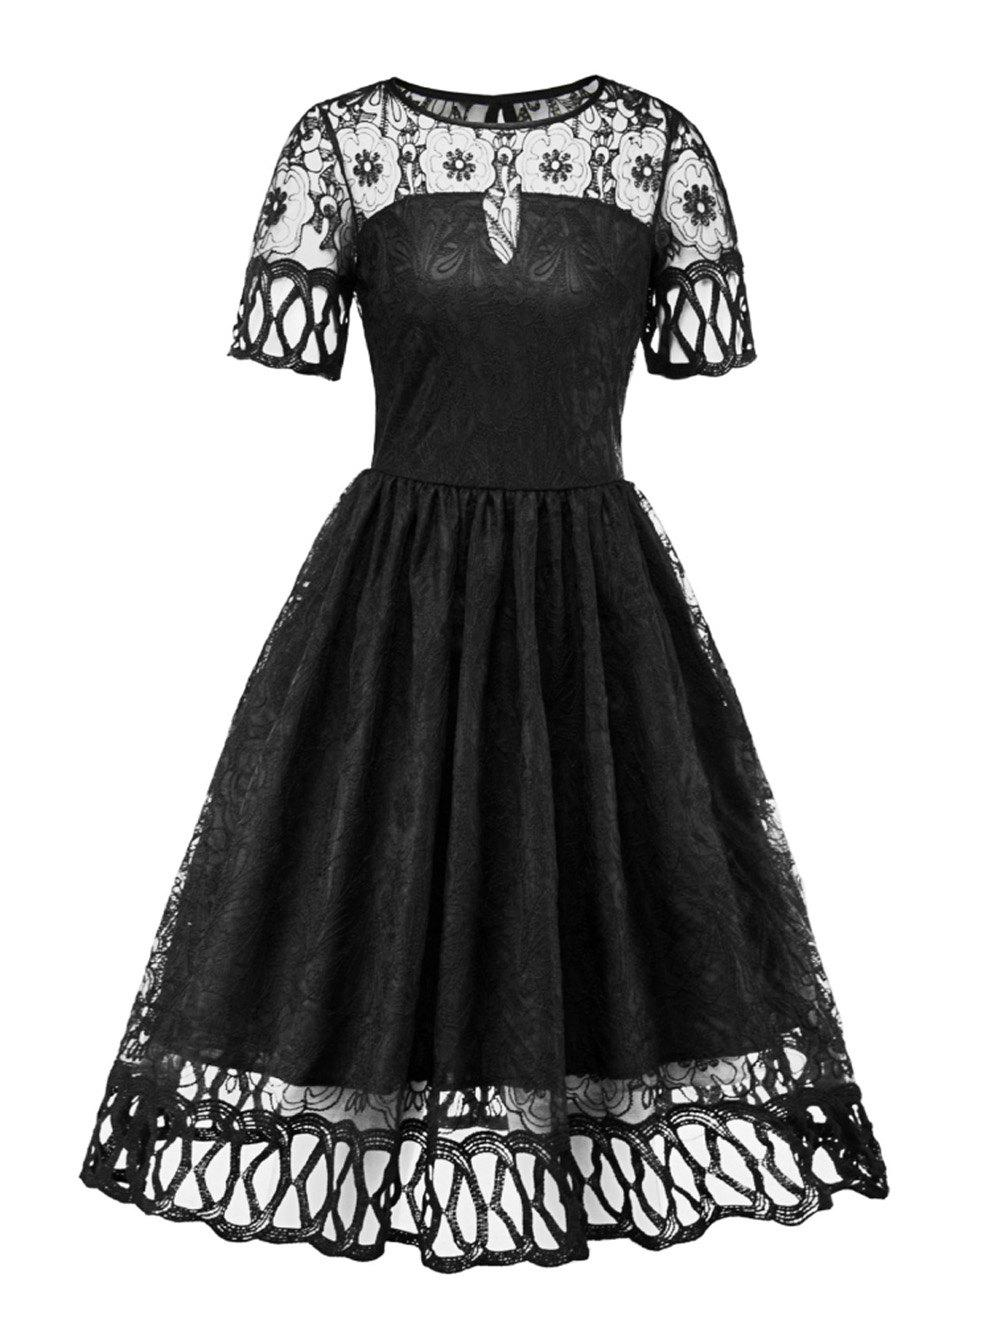 Best Hepburn Vintage Series Women Dress Spring And Summer Round Neck Hollow Out Lace-stitching Design Short Sleeve Corset Retro Dress